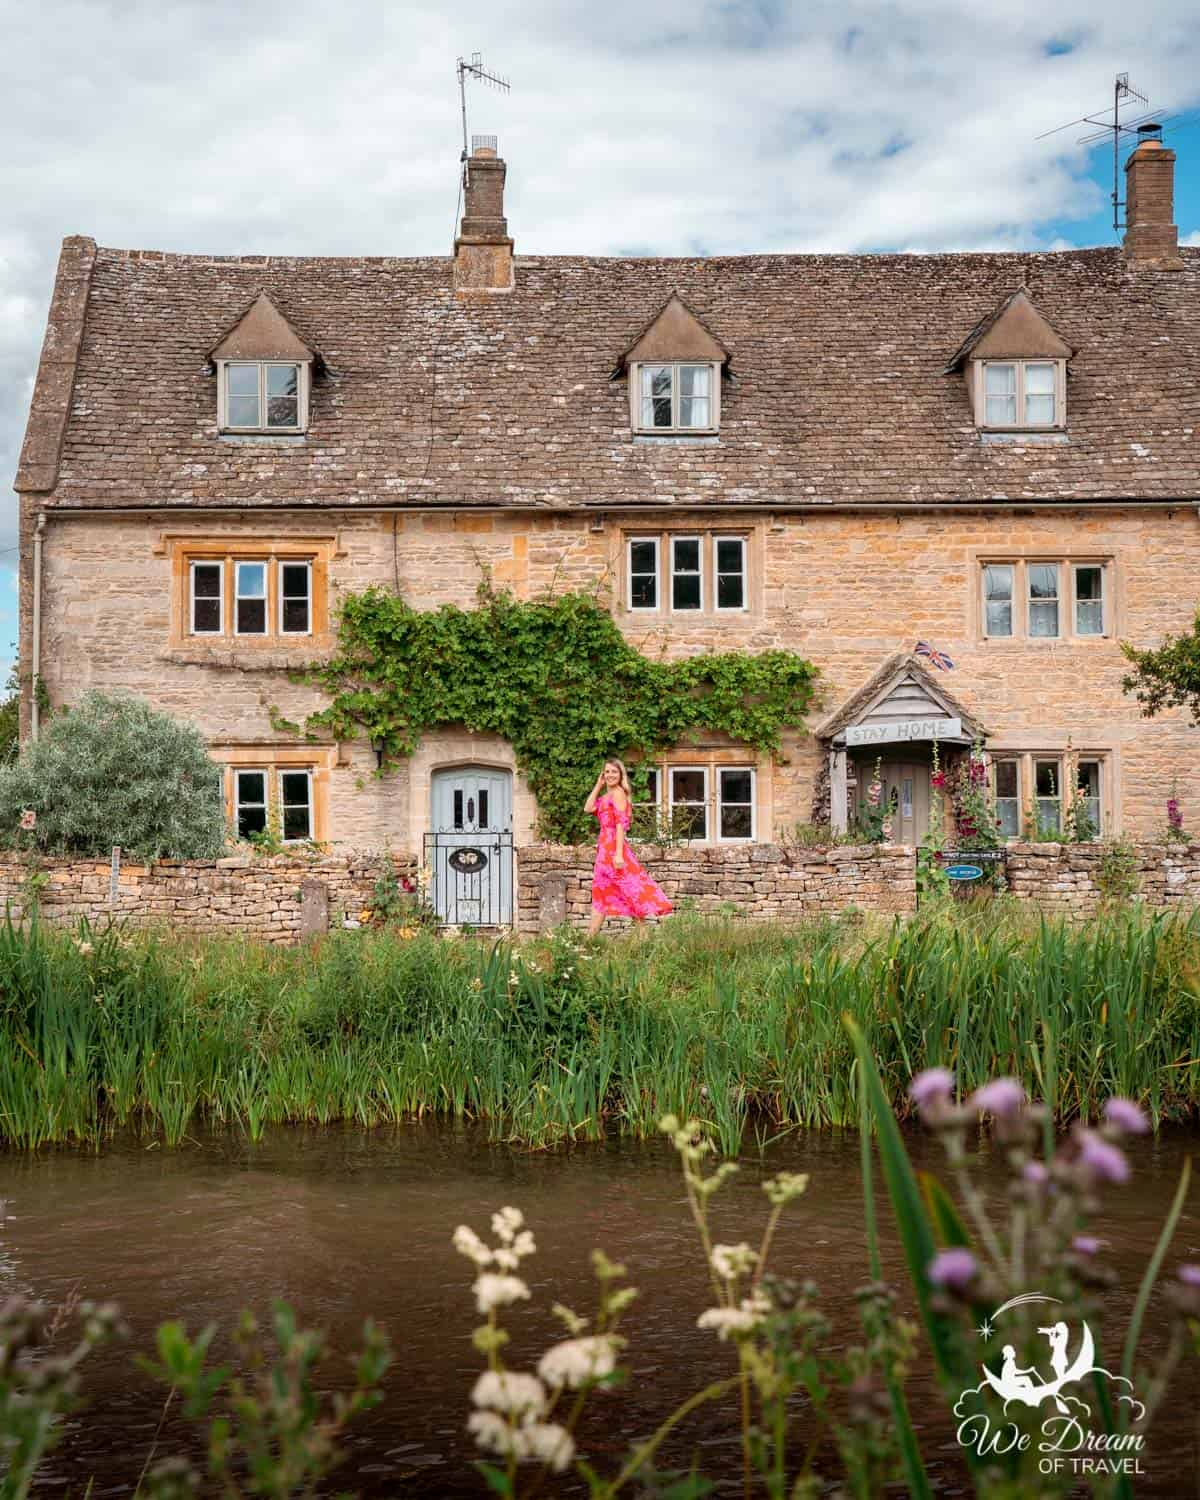 A beautiful row of cottages in the picturesque Cotswold village Lower Slaughter